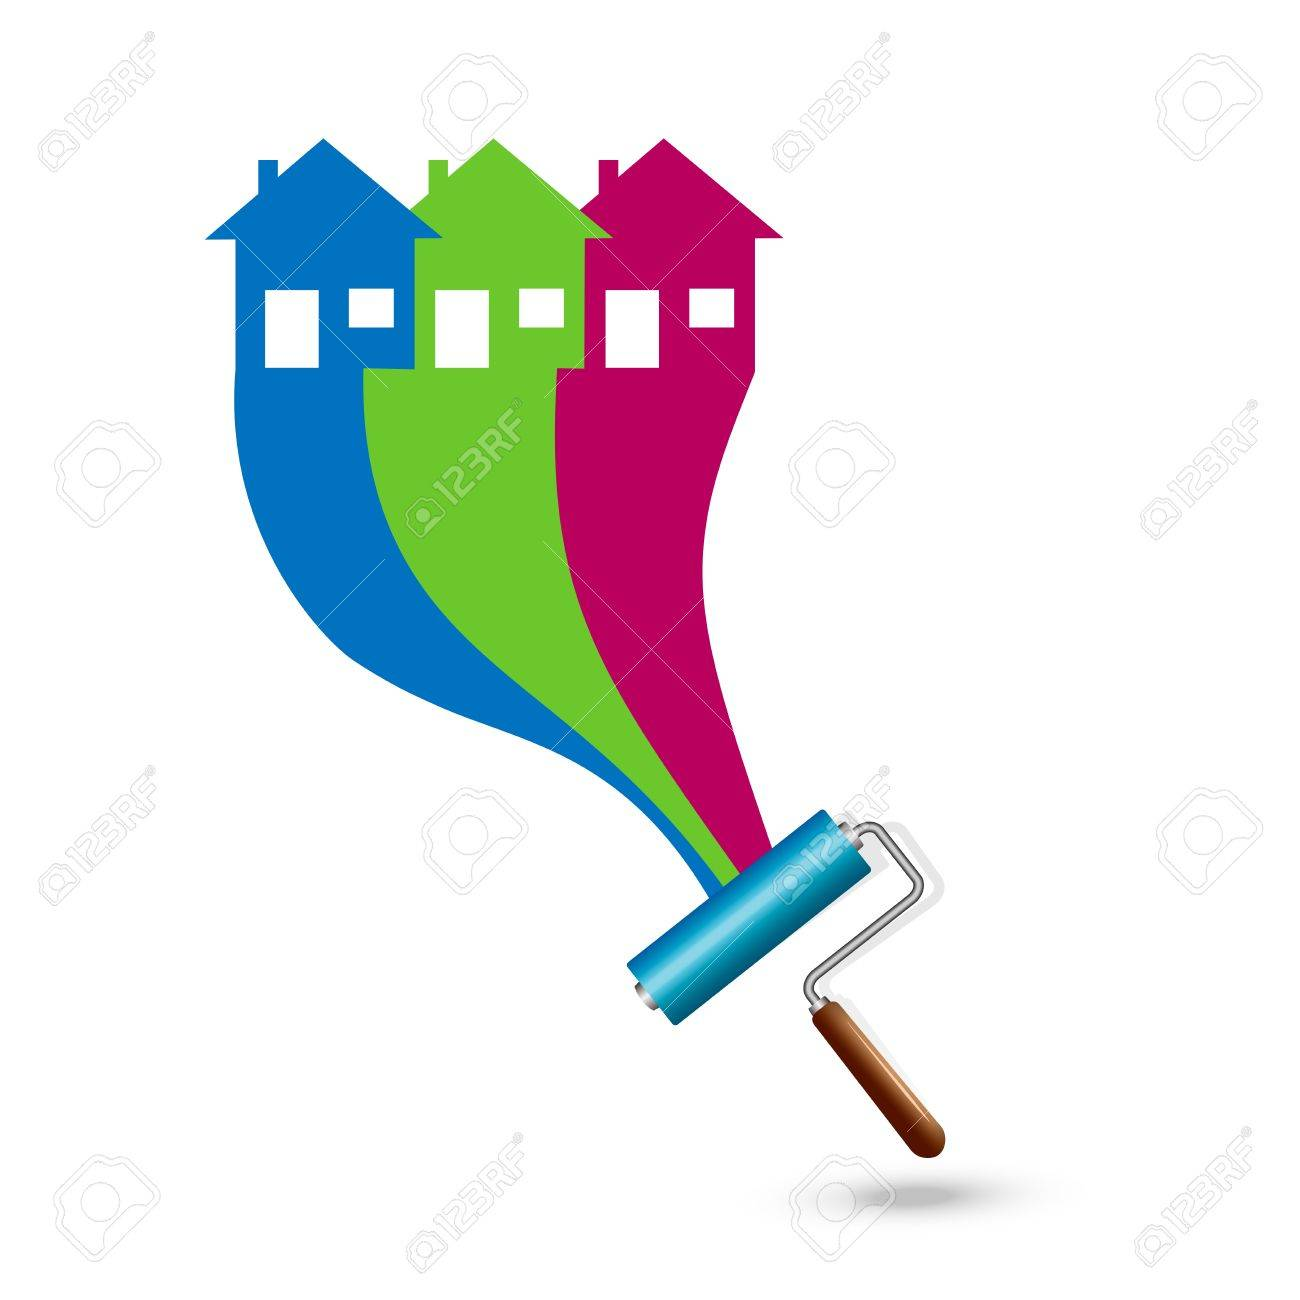 Painting the house. Paint Rollers Stock Vector - 20921265